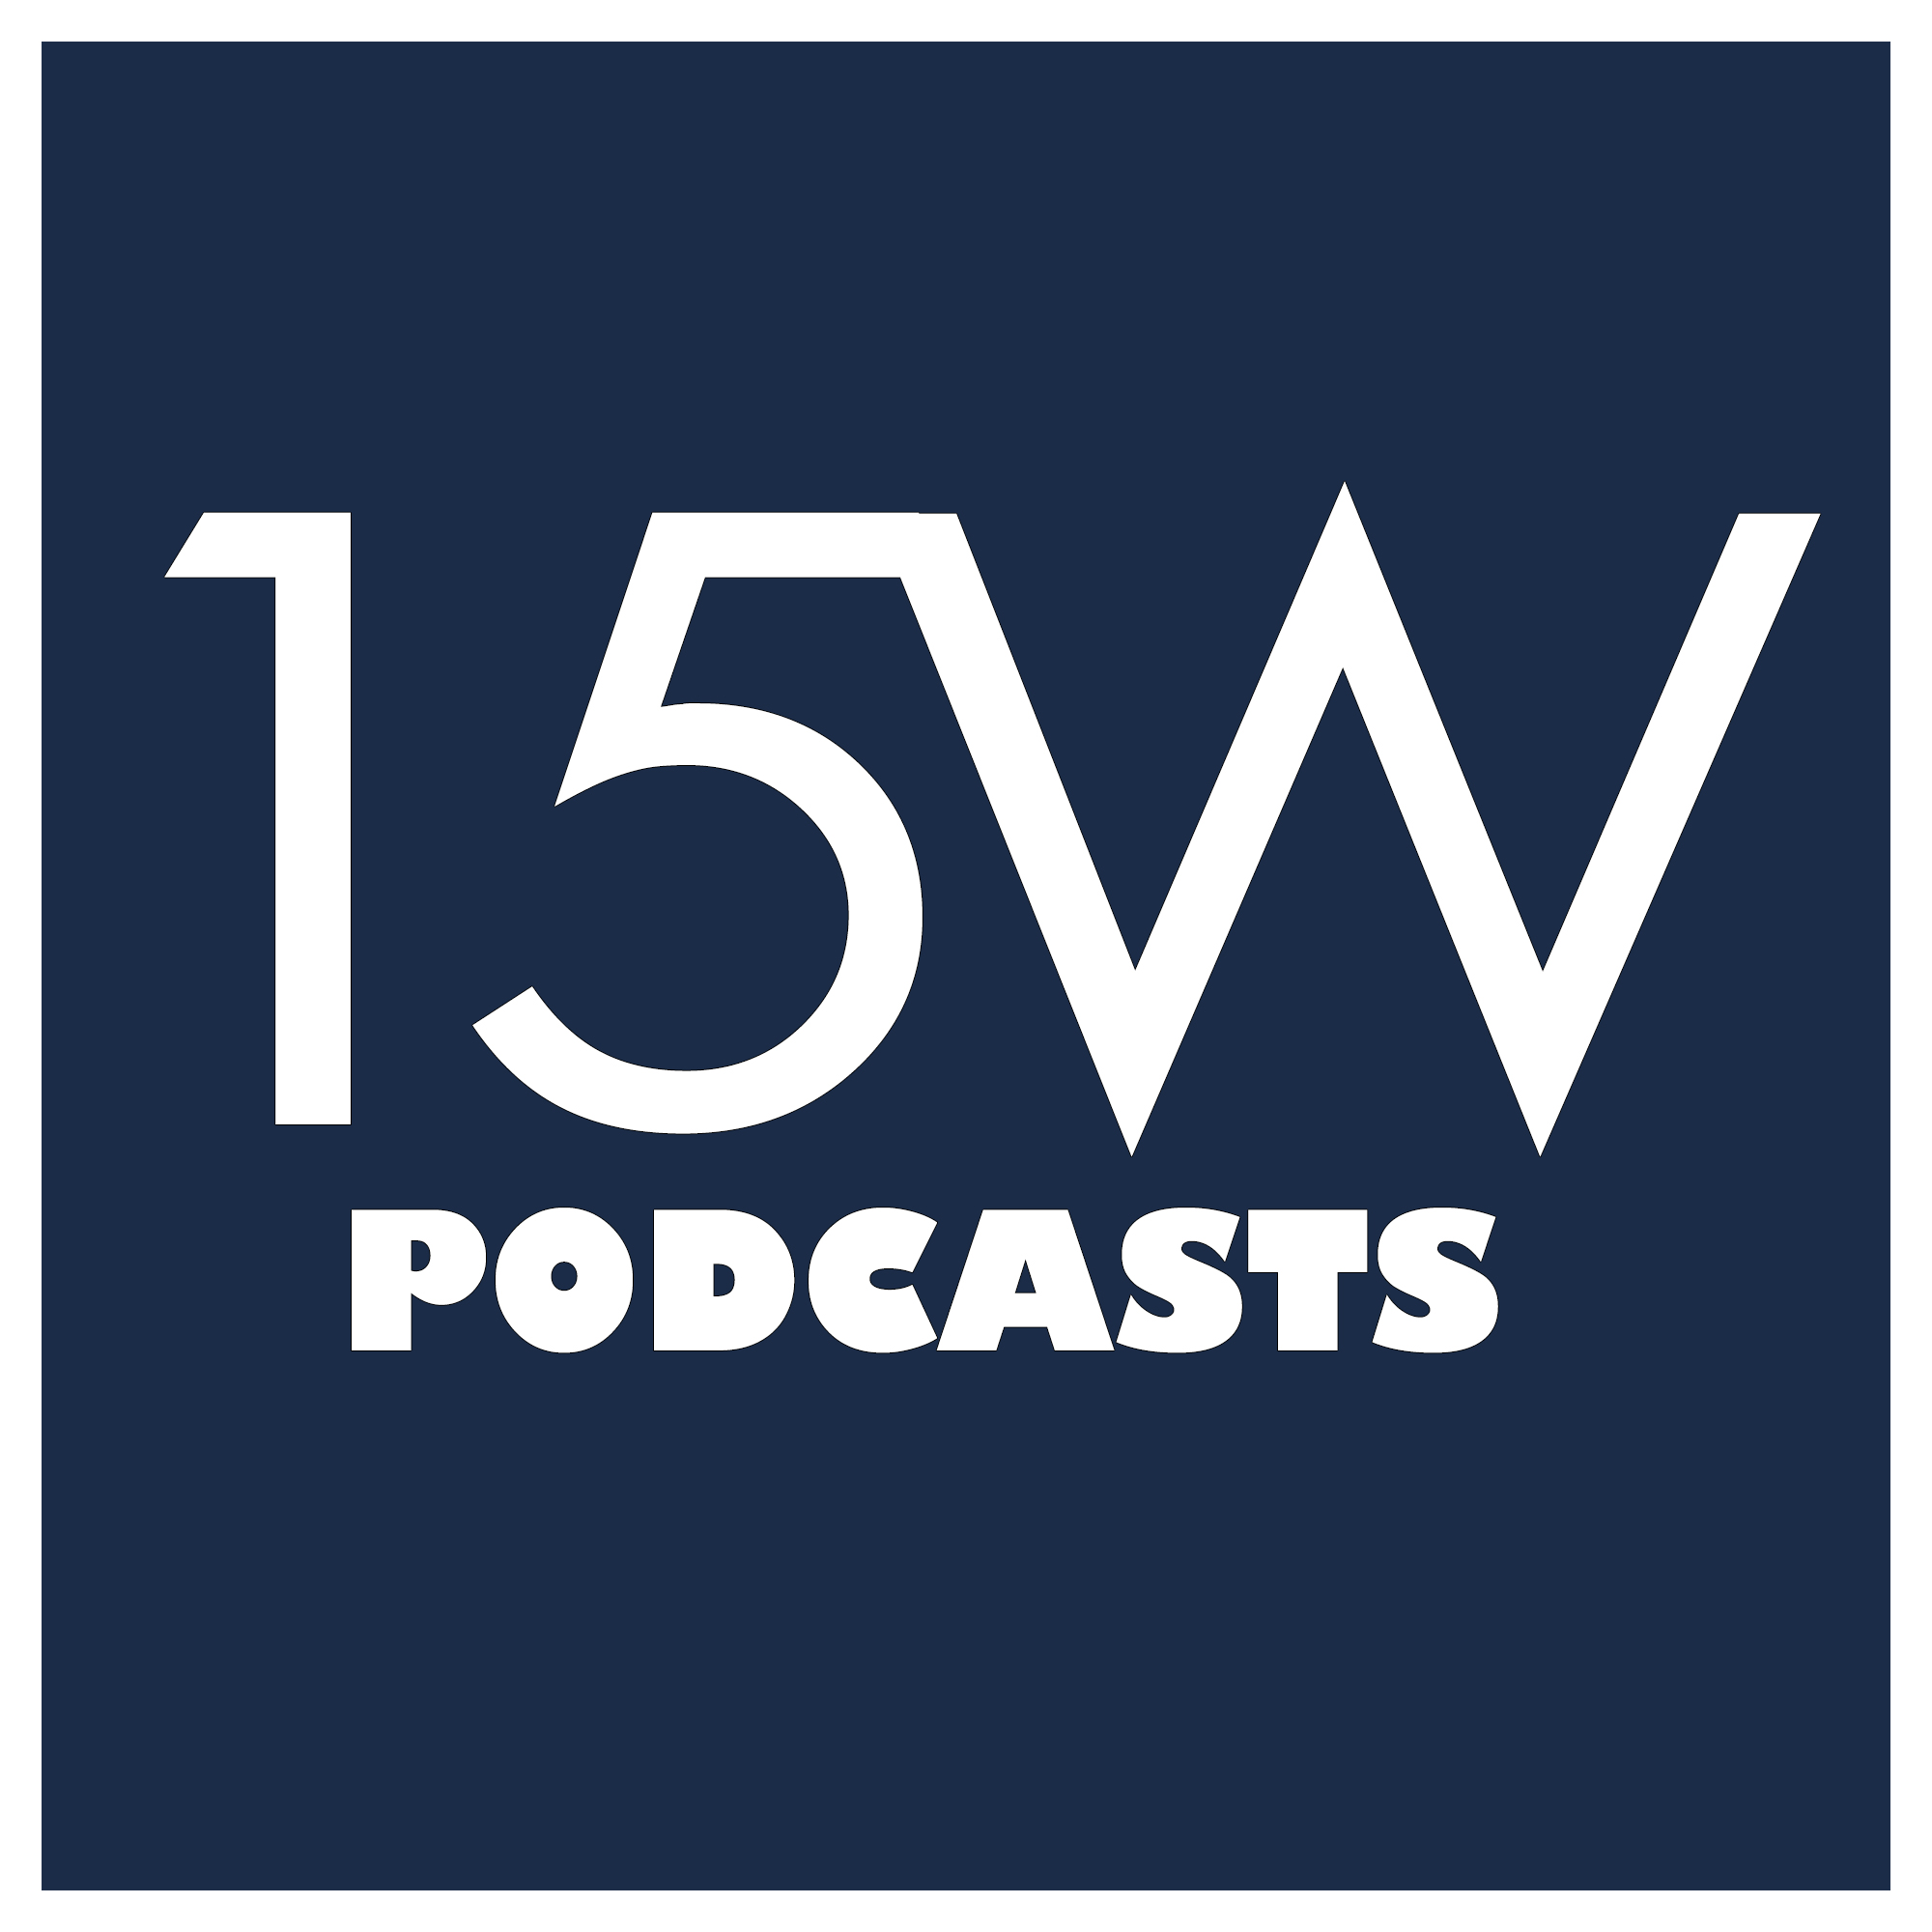 15wpodcasts